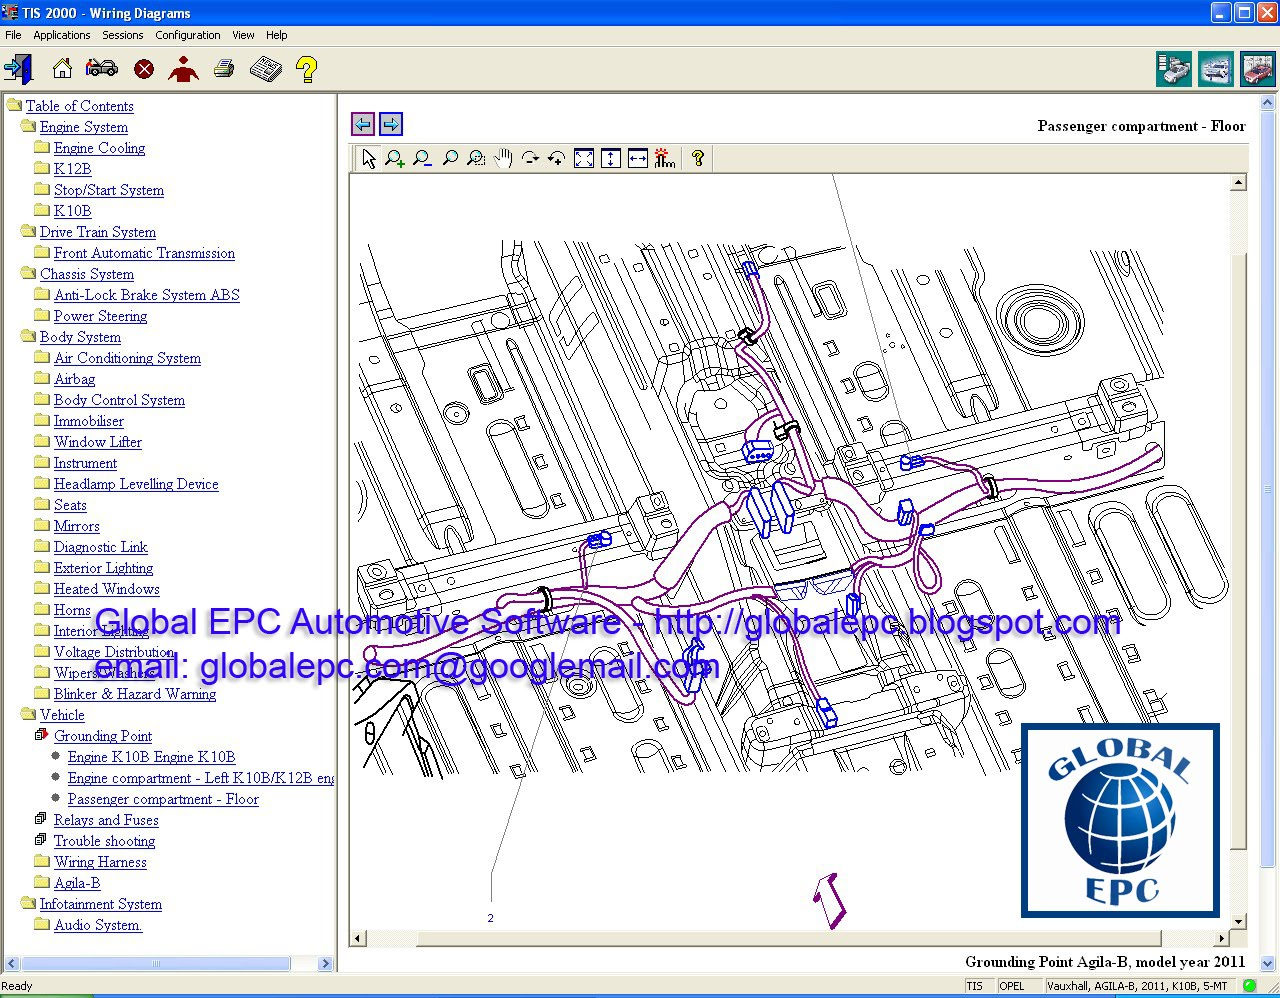 global epc automotive software opel vauxhall holden tis2000 tisopel vauxhall holden tis2000 tis 115 0 e [ 1280 x 998 Pixel ]